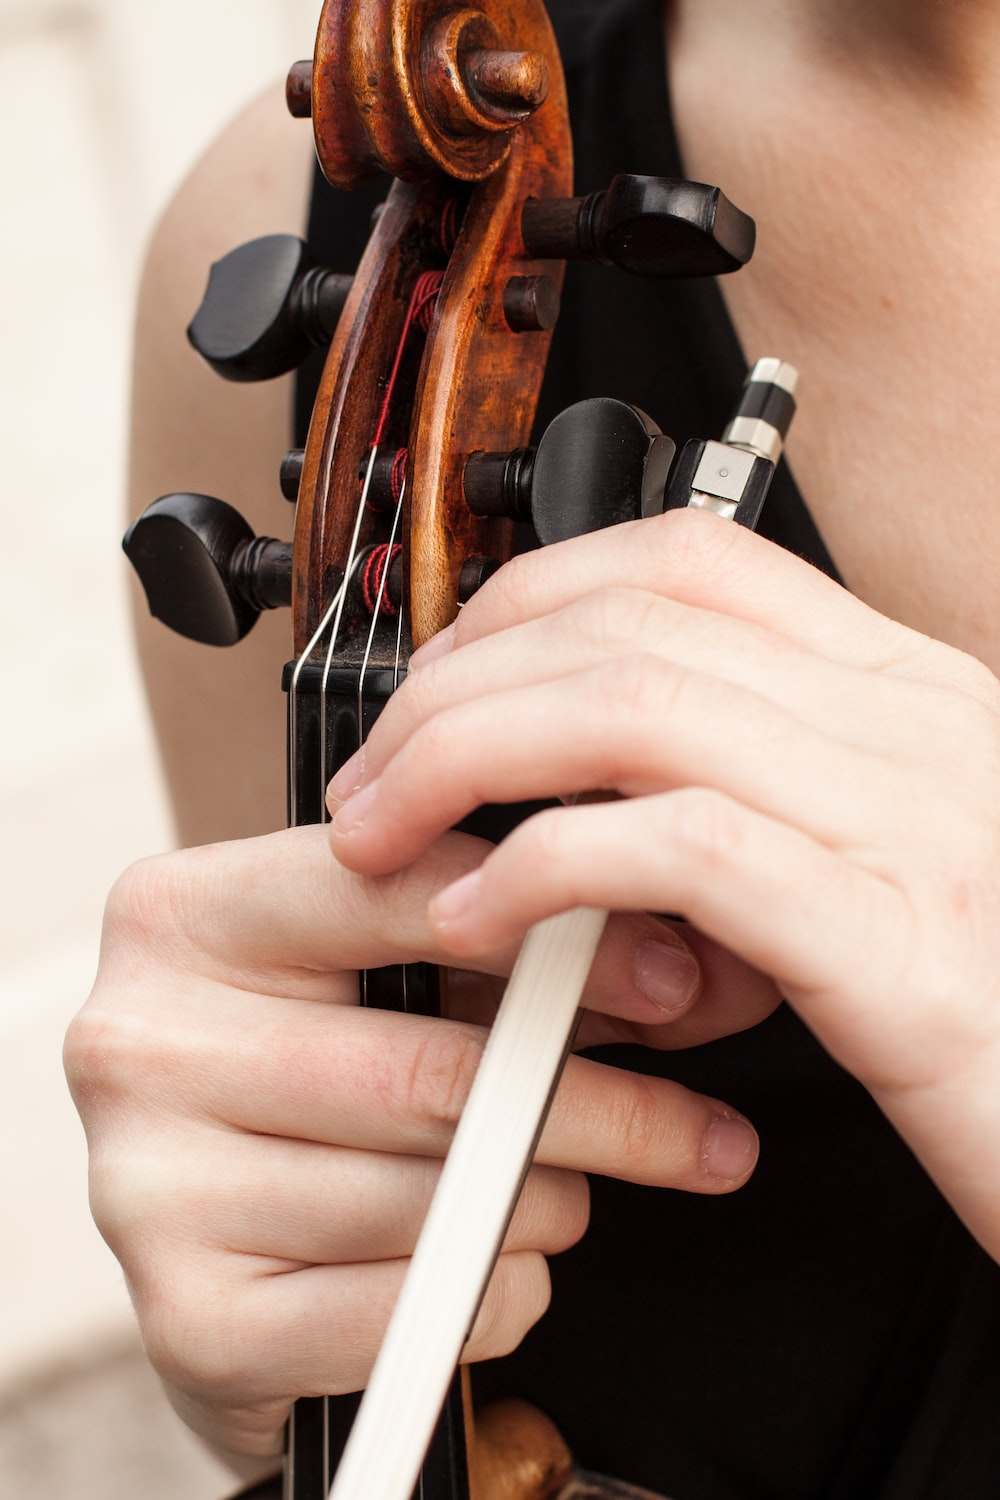 person playing violin in close up photography